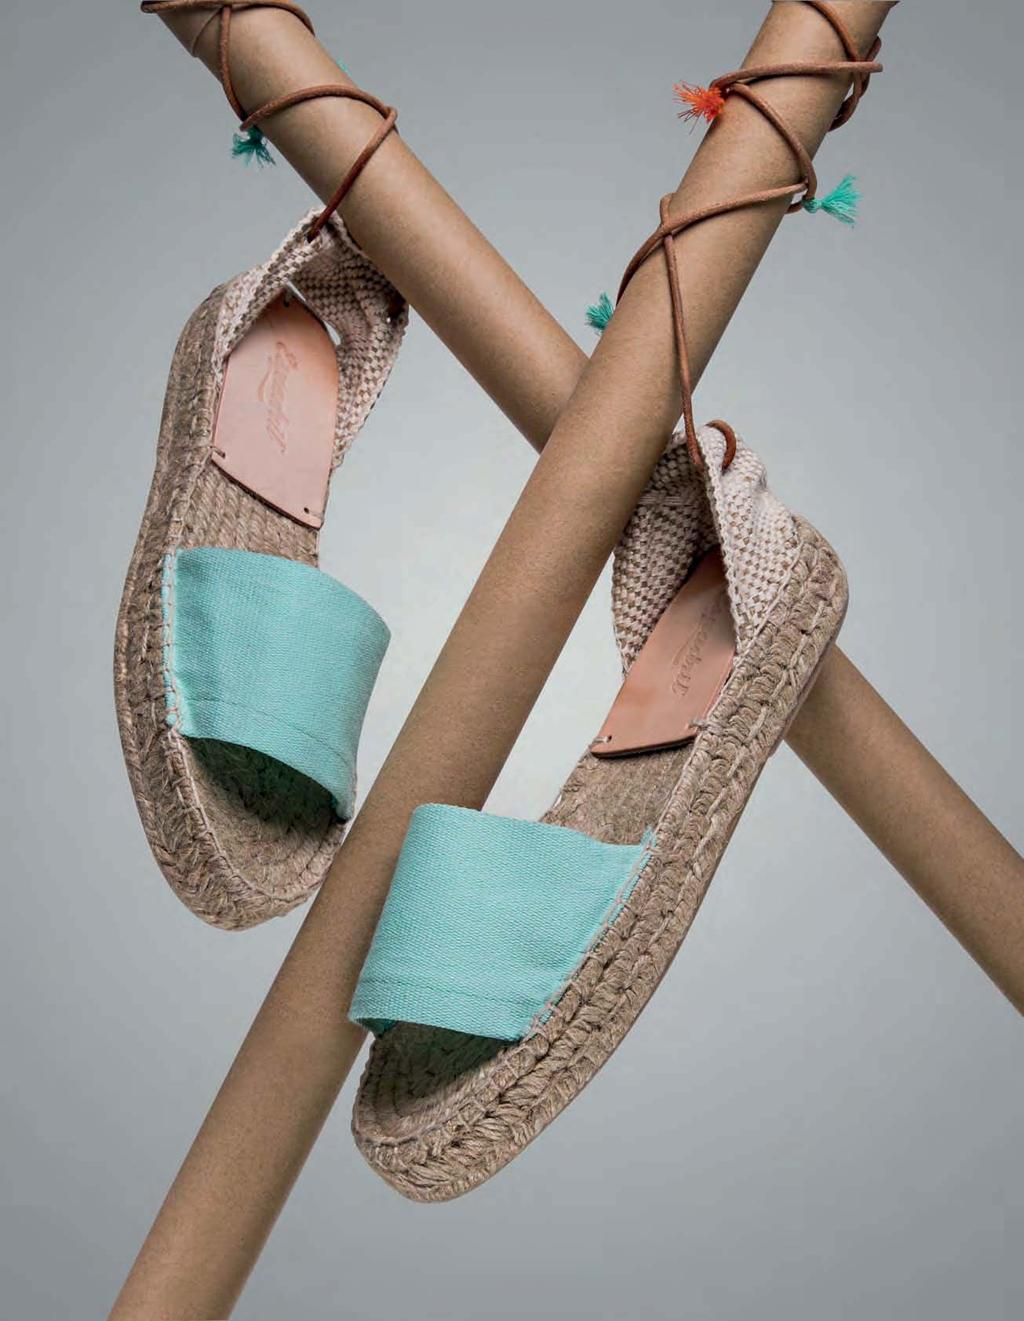 THE NEW BLUE ESPADRIL, R800, ESPADRIL SOLE MATE A touch of turquoise, tied-up laces and a woven sole, the espradille is a